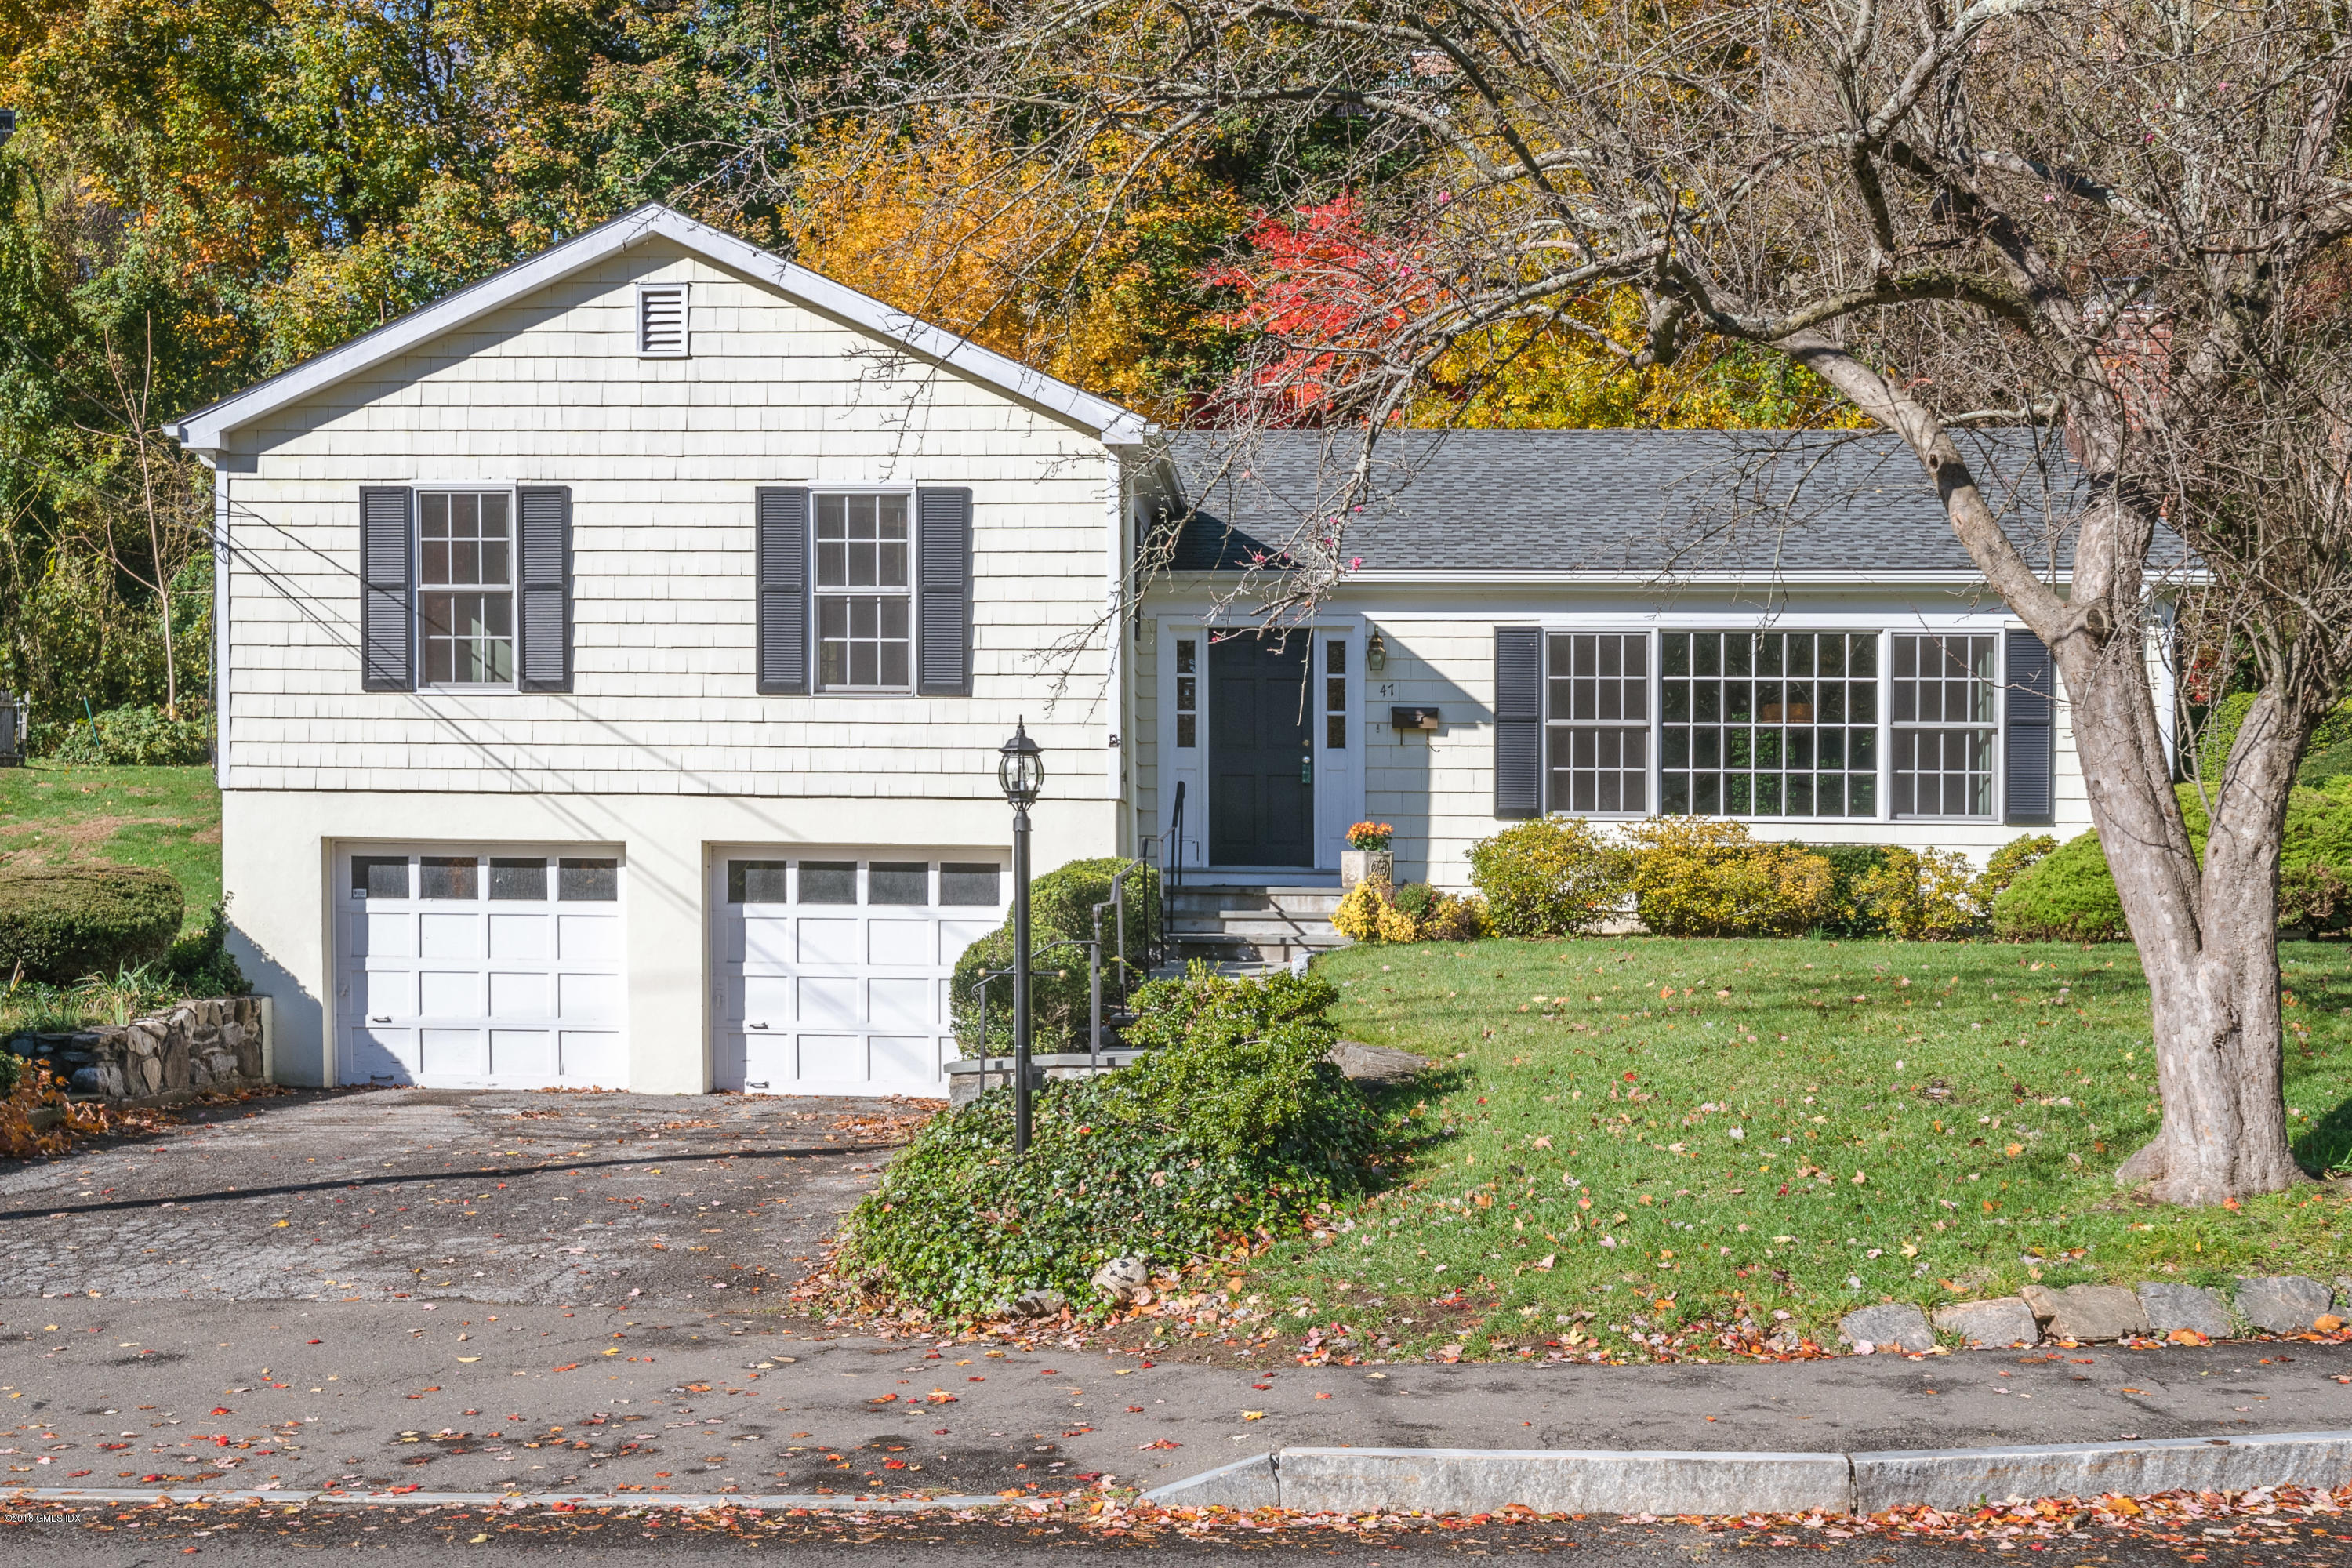 47 Mallard Drive, Greenwich, Connecticut 06830, 3 Bedrooms Bedrooms, ,2 BathroomsBathrooms,Single family,For Rent,Mallard,110750